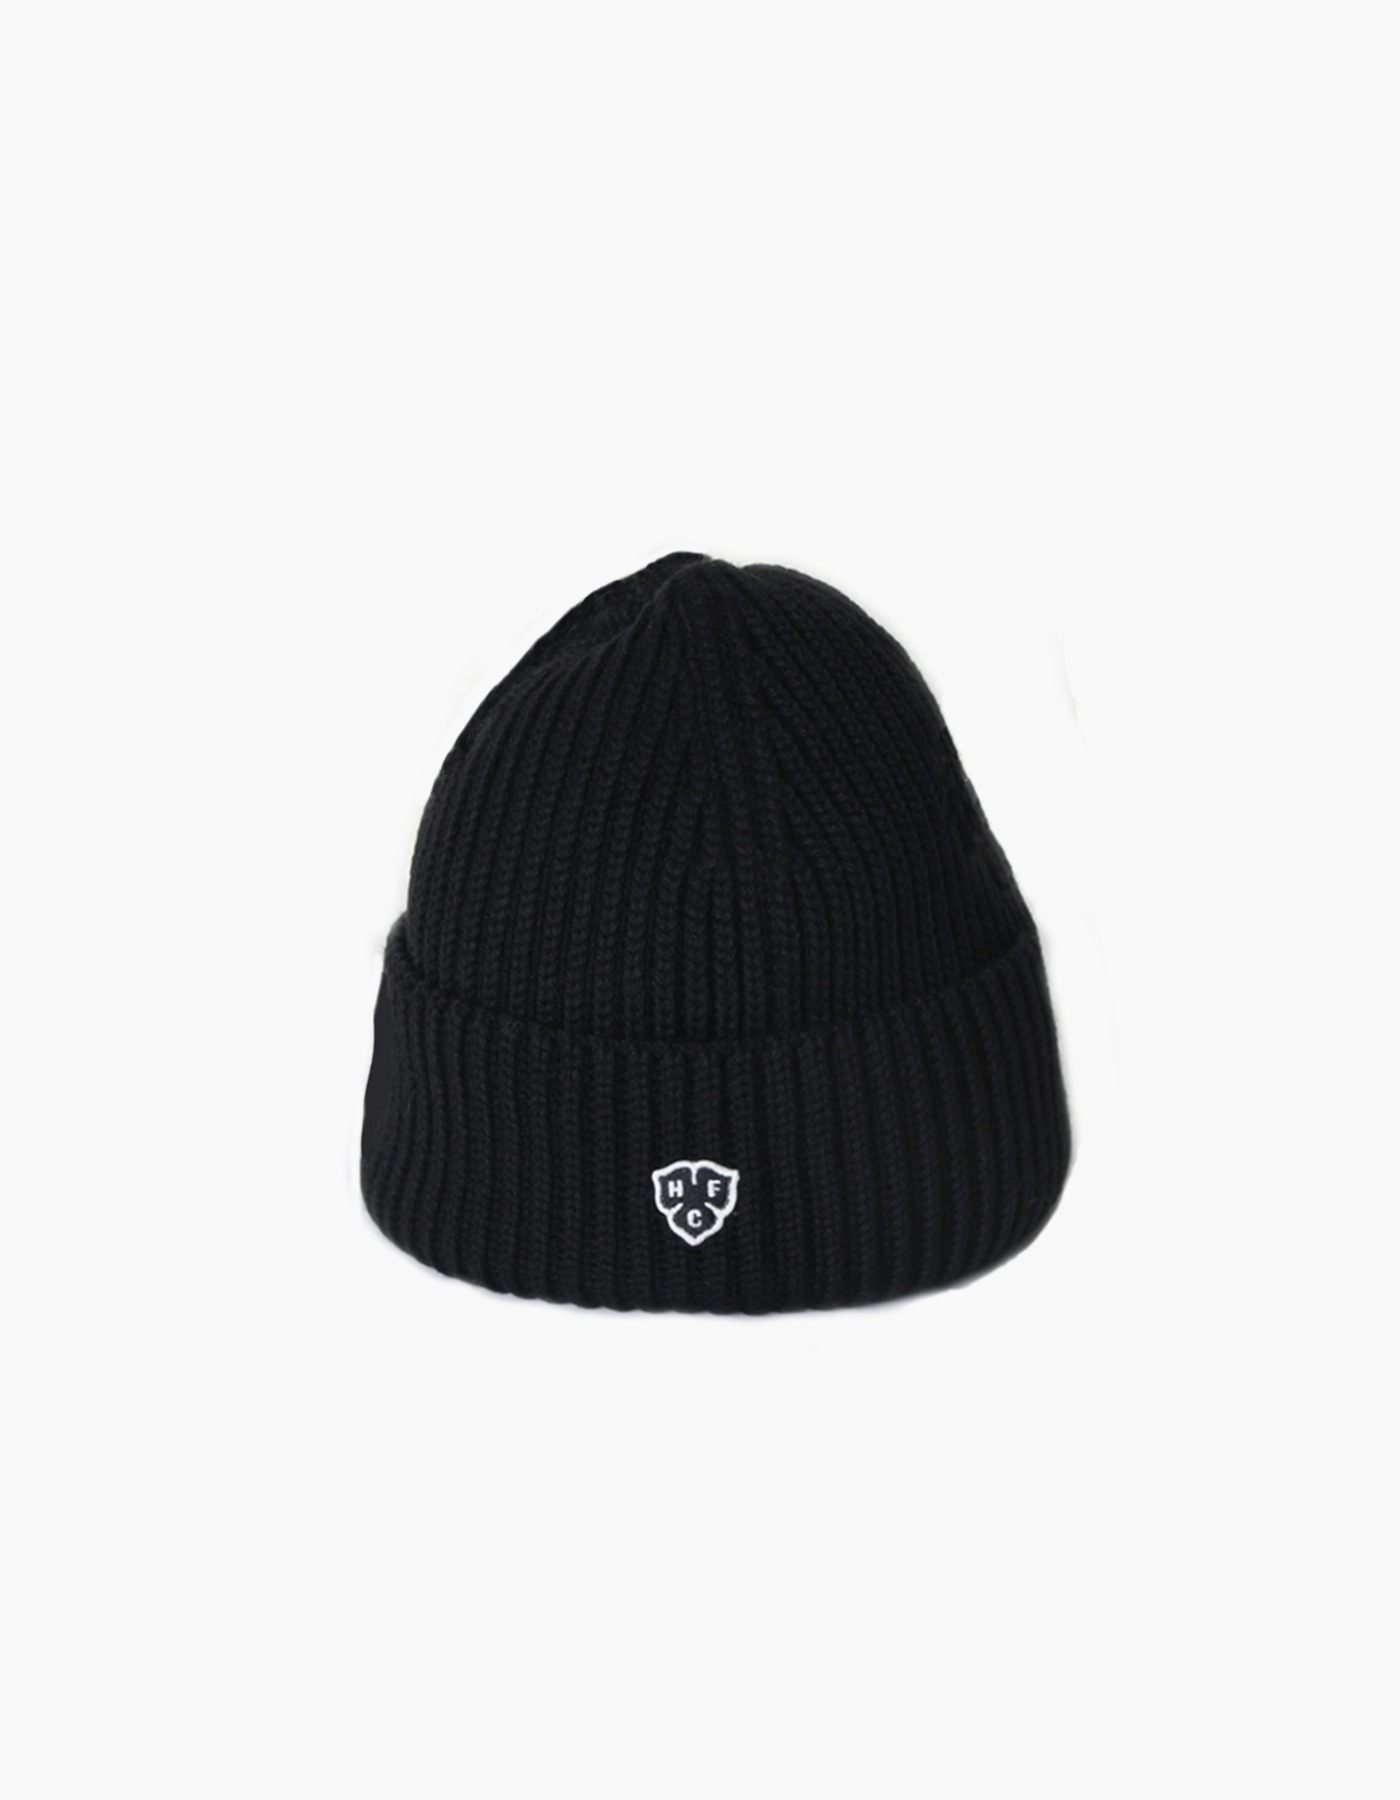 HFC CLOVER WOOL WATCH CAP / BLACK